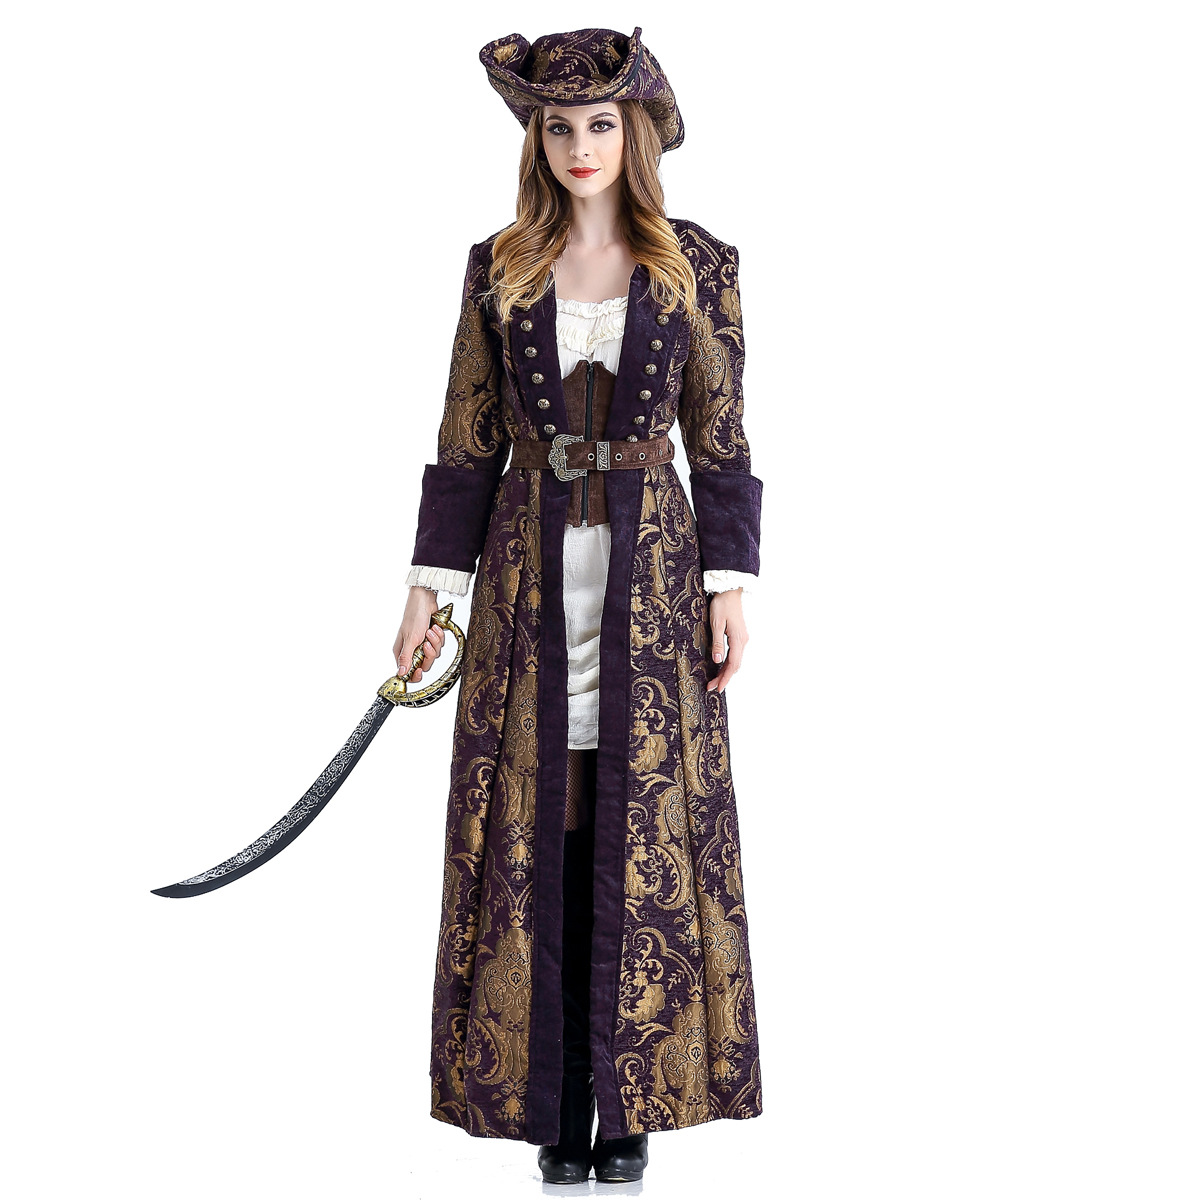 Captain Pirates of the Caribbean Costumes Jack Sparrow Fancy Dress Halloween Deluxe Carnival Pirates Of The Caribbean Clothes